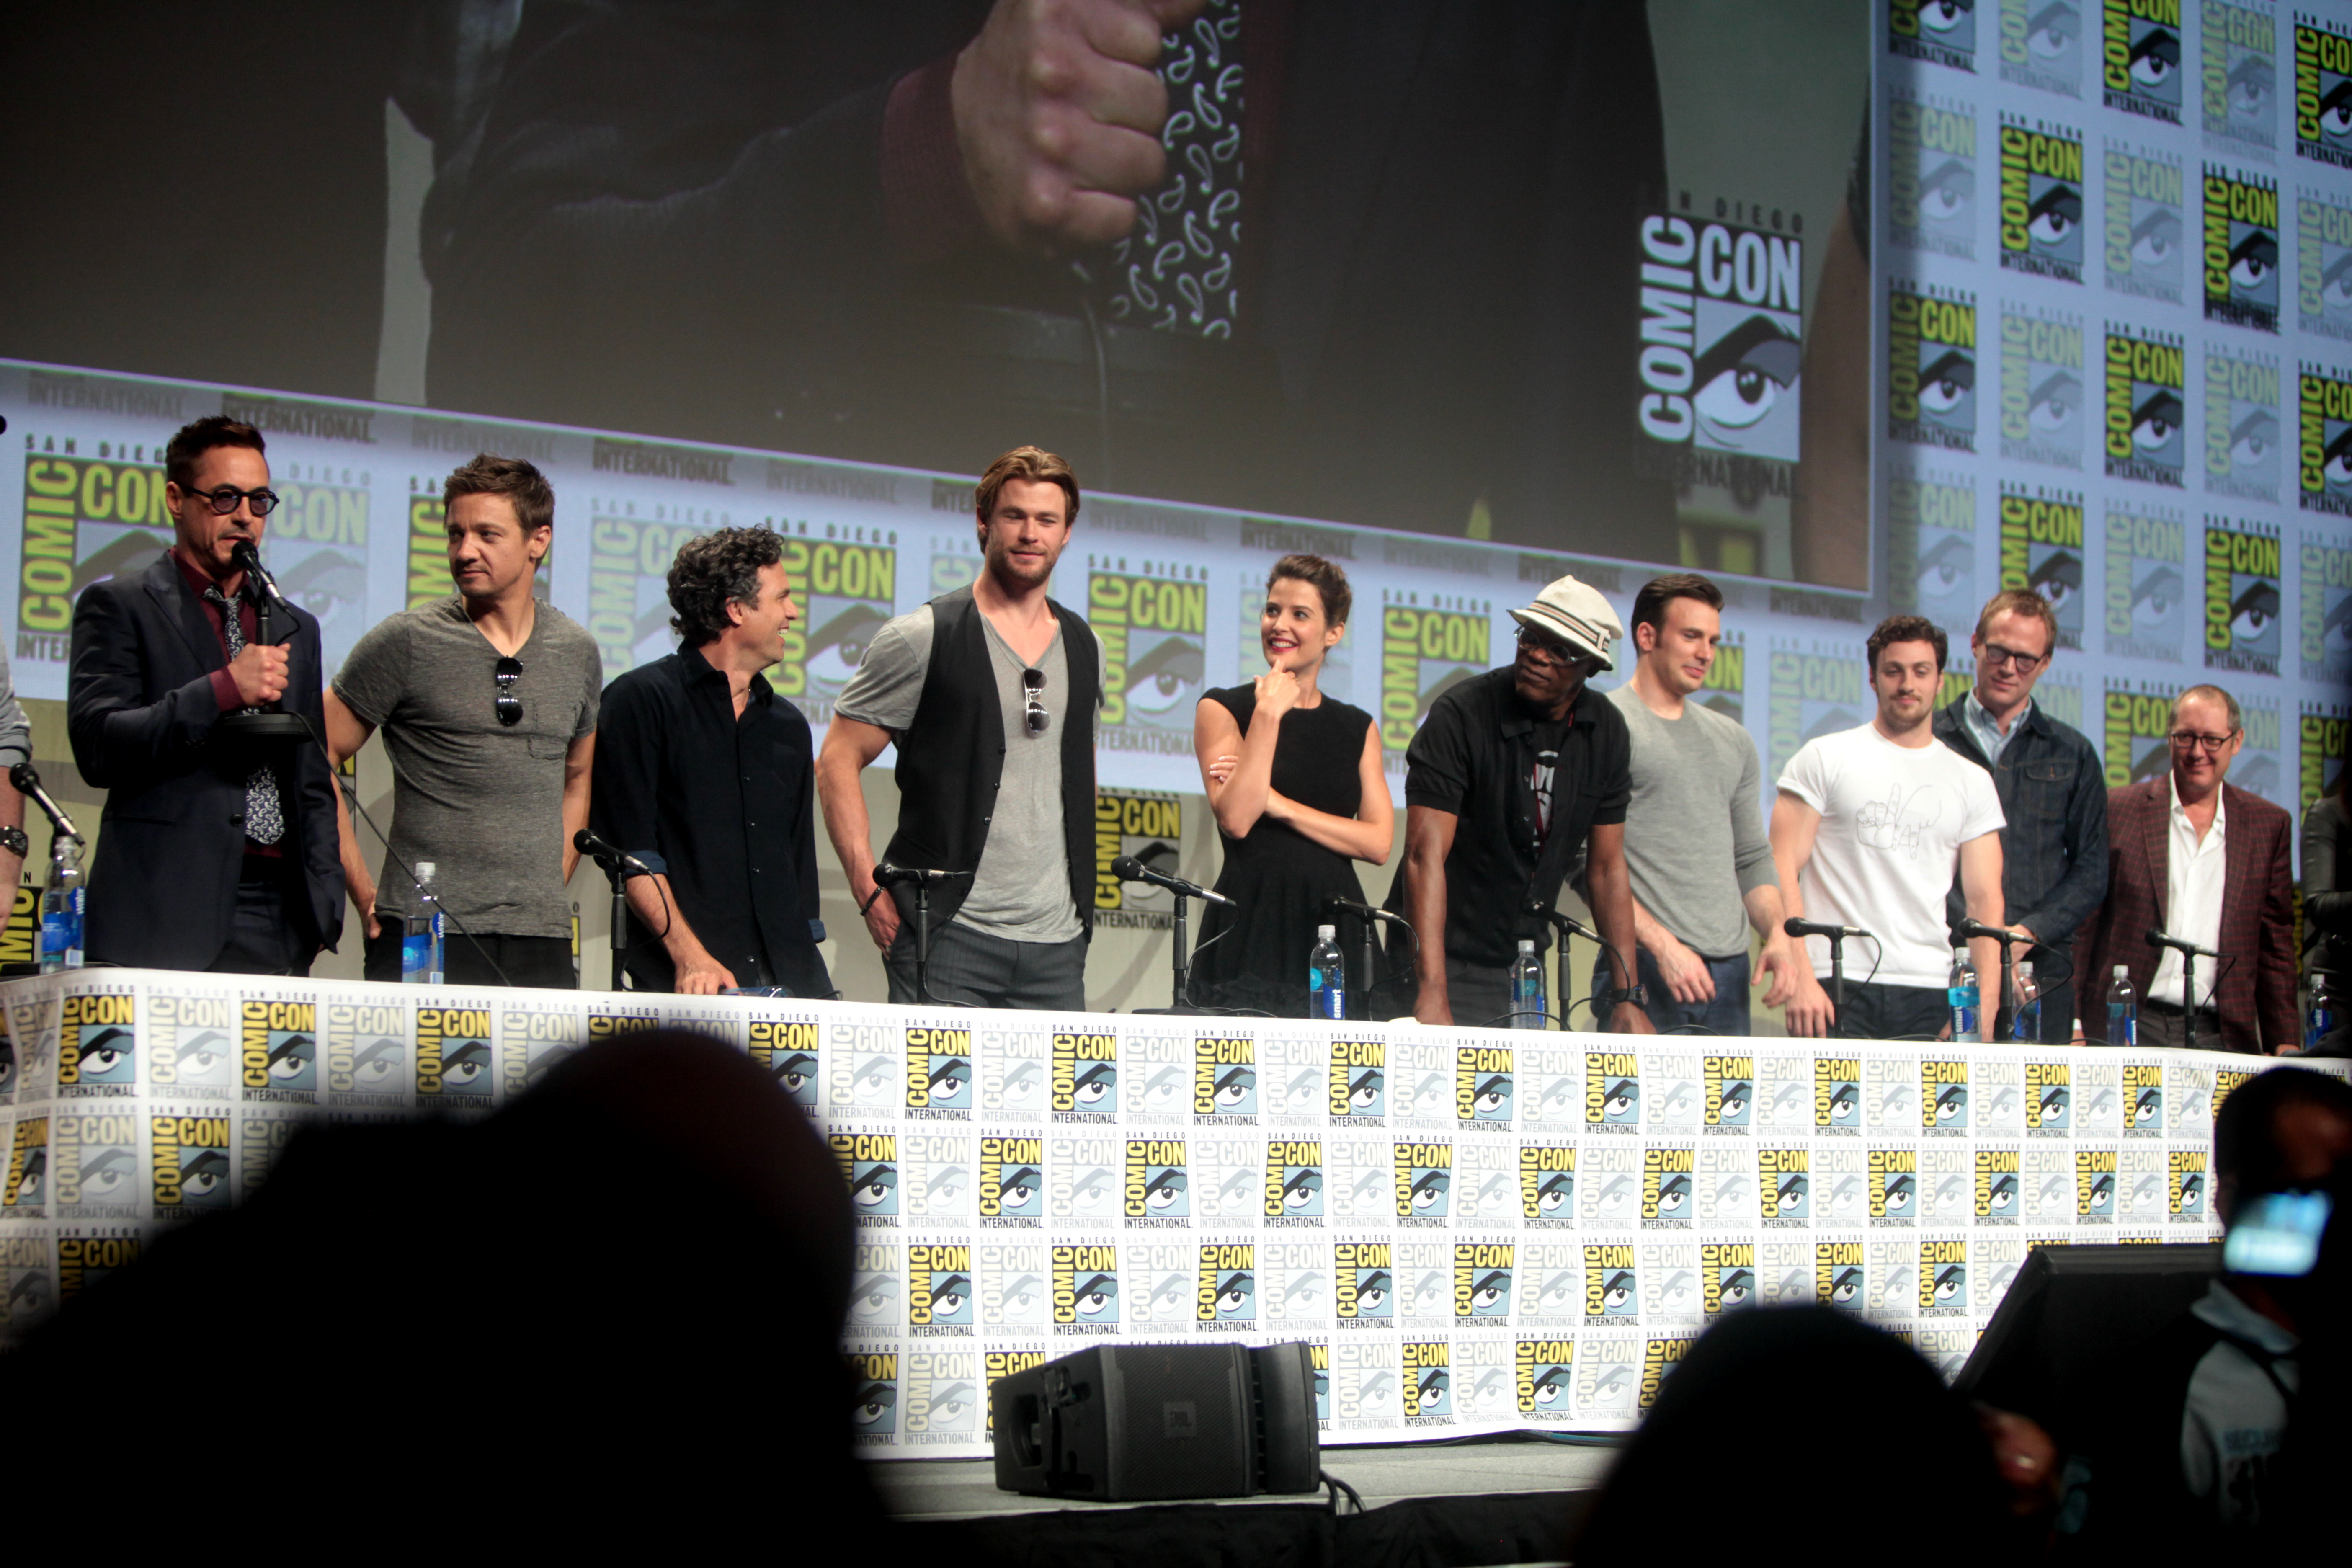 Avengers_Age_of_Ultron_SDCC_2014_panel.jpg